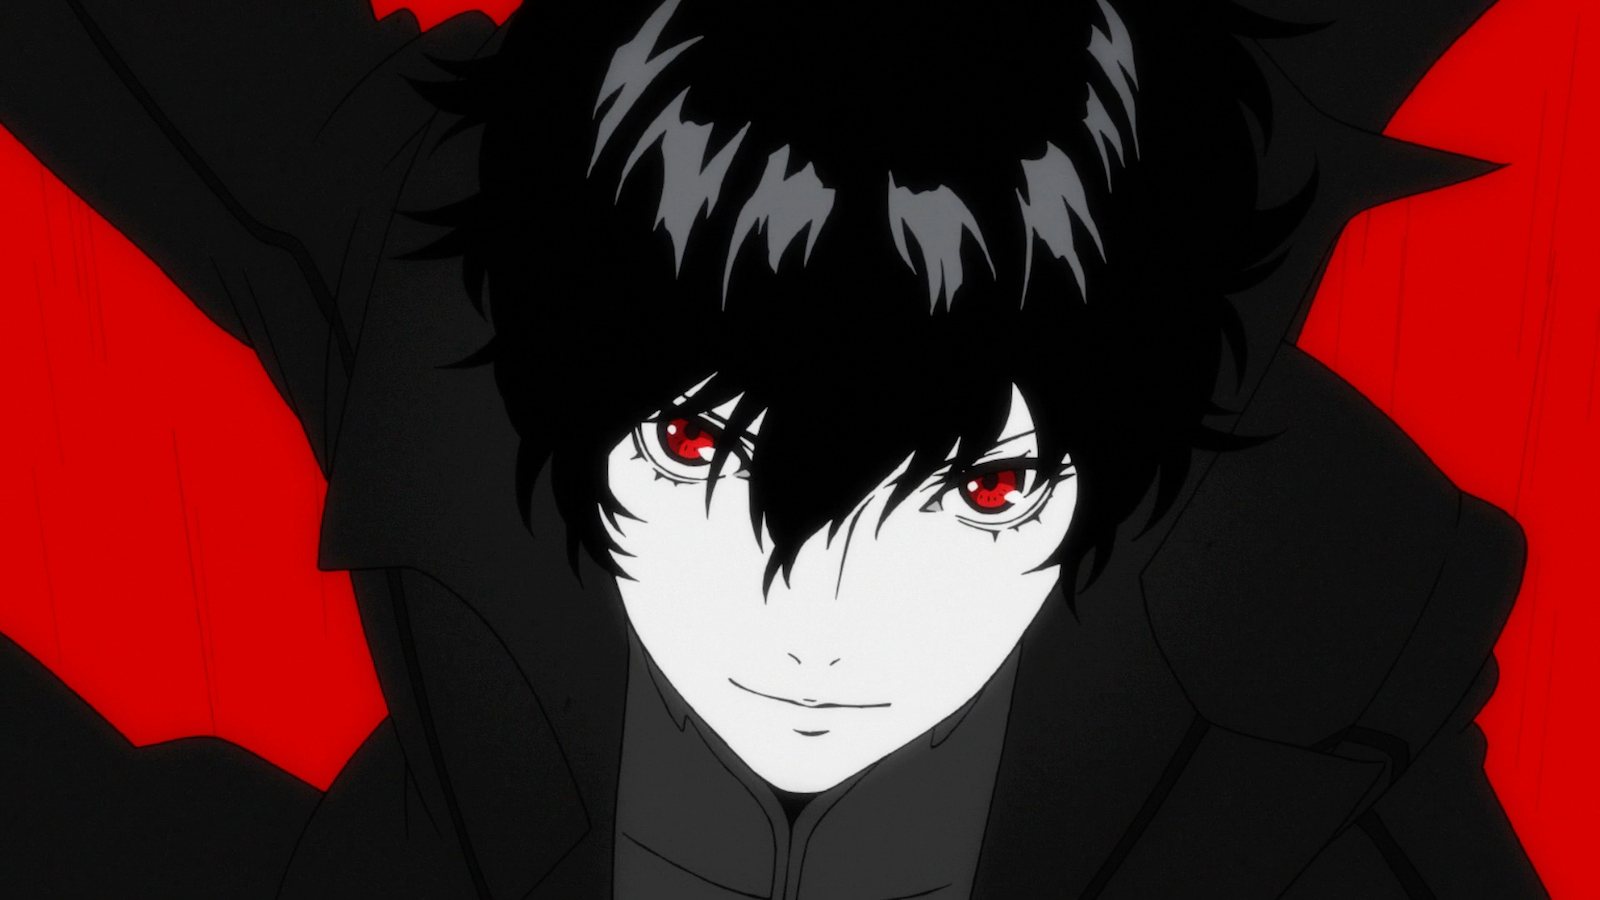 Persona 5 The Royal Adds New Phantom Thief, Comes West Next Year